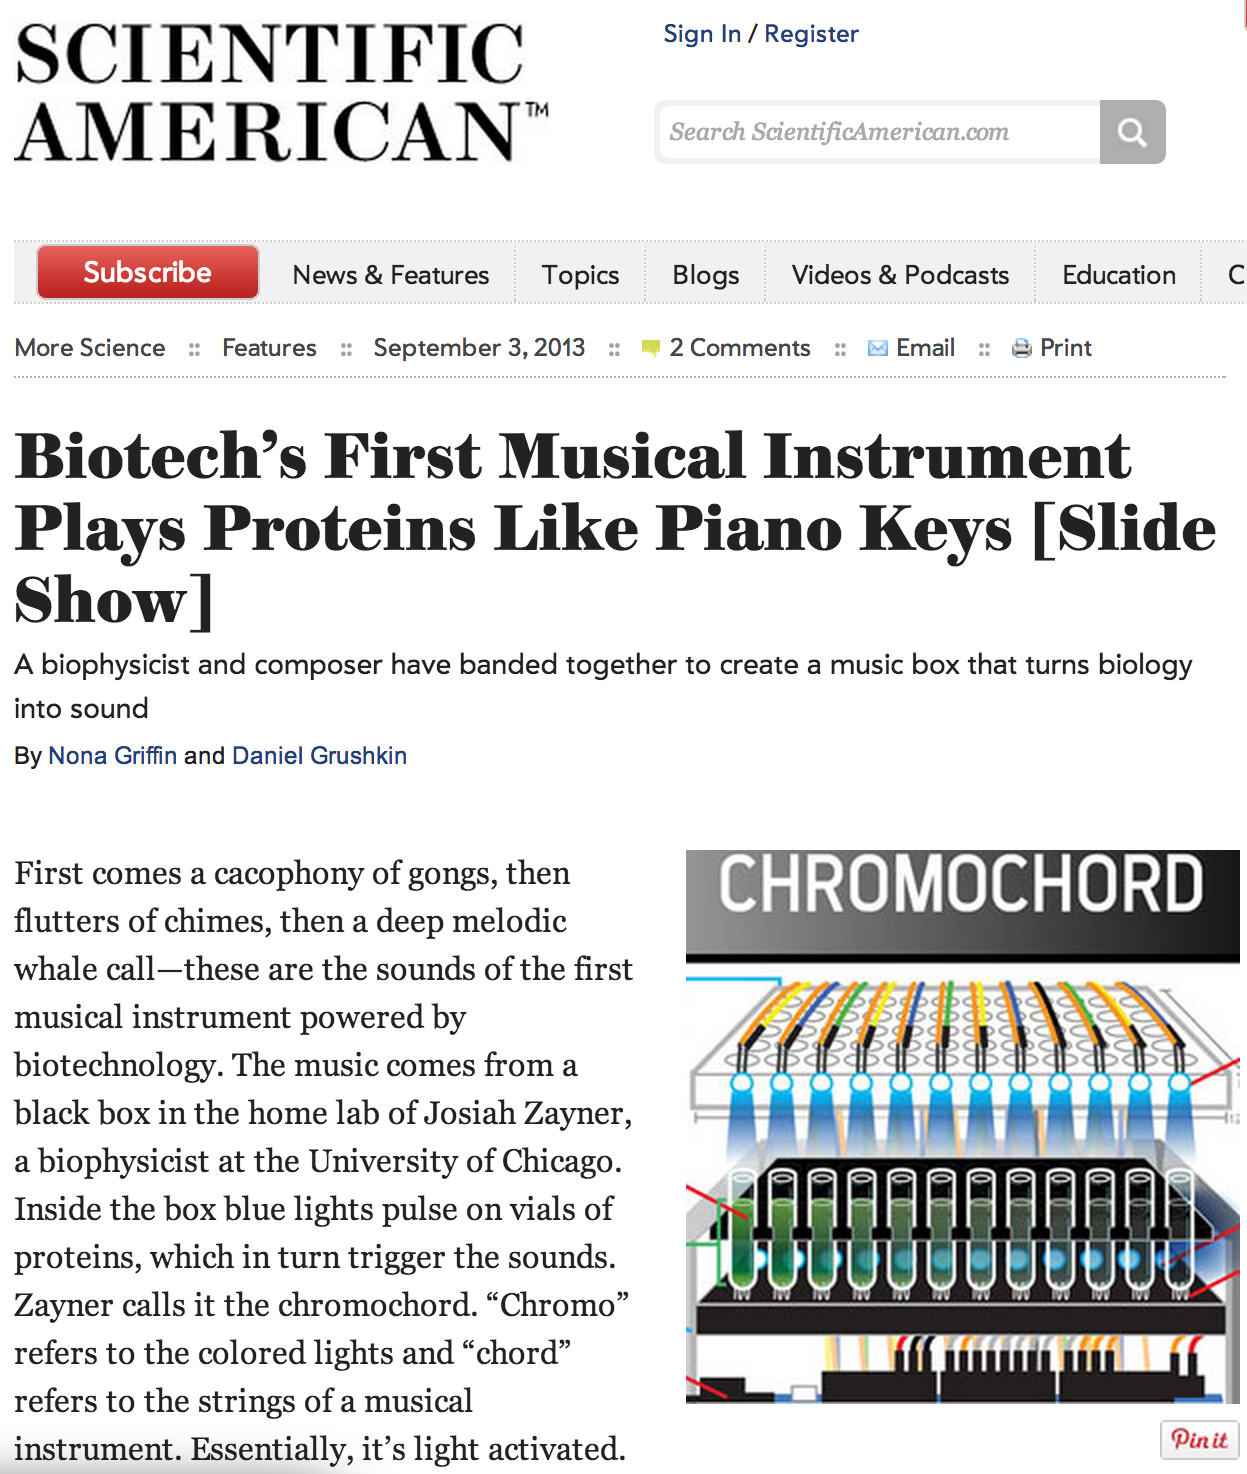 Chromochord featured in Scientific American